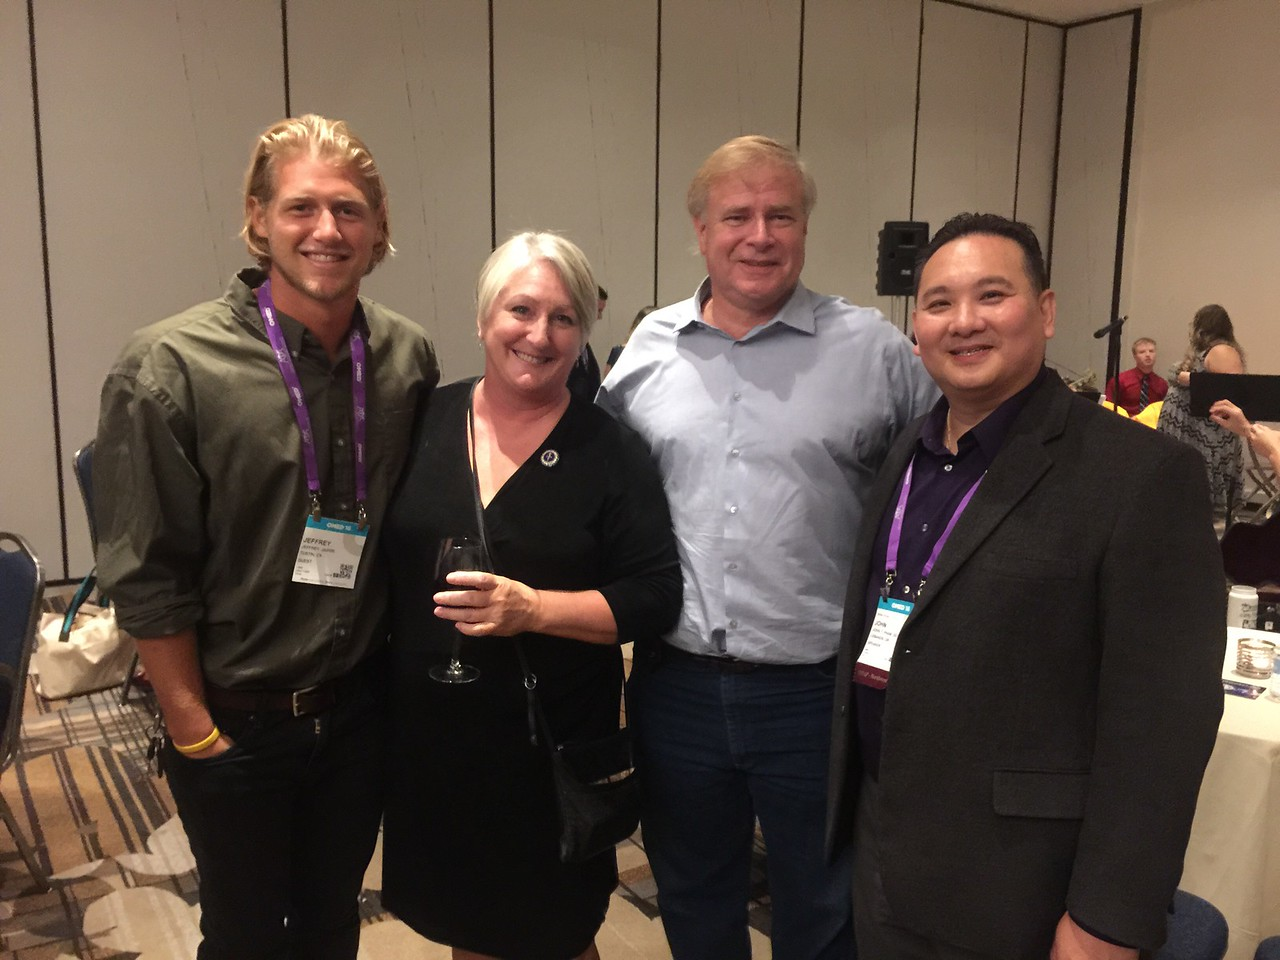 OMED 2016 Conference & WesternU Reception Anaheim, CA